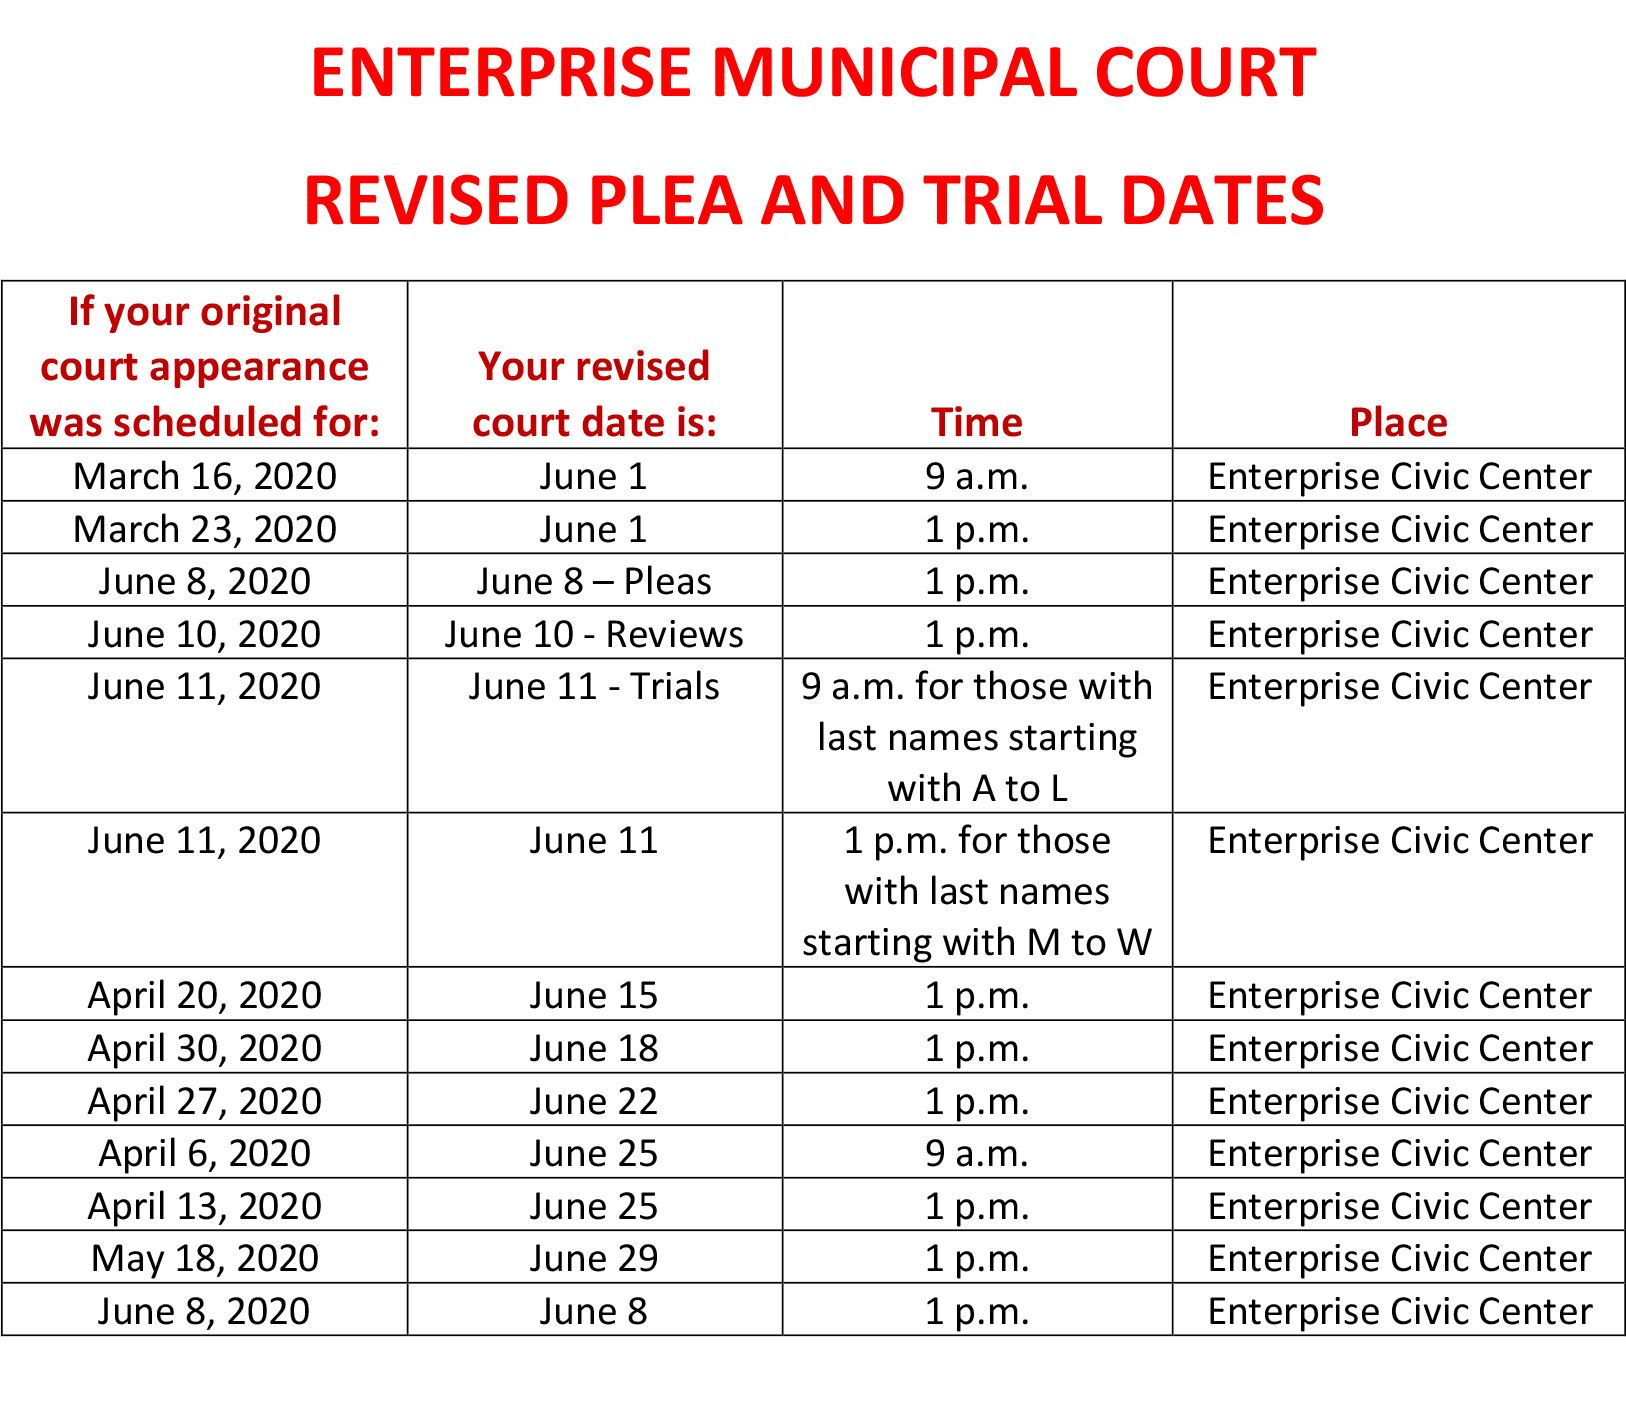 REVISED PLEA AND TRIAL DATES, Table style